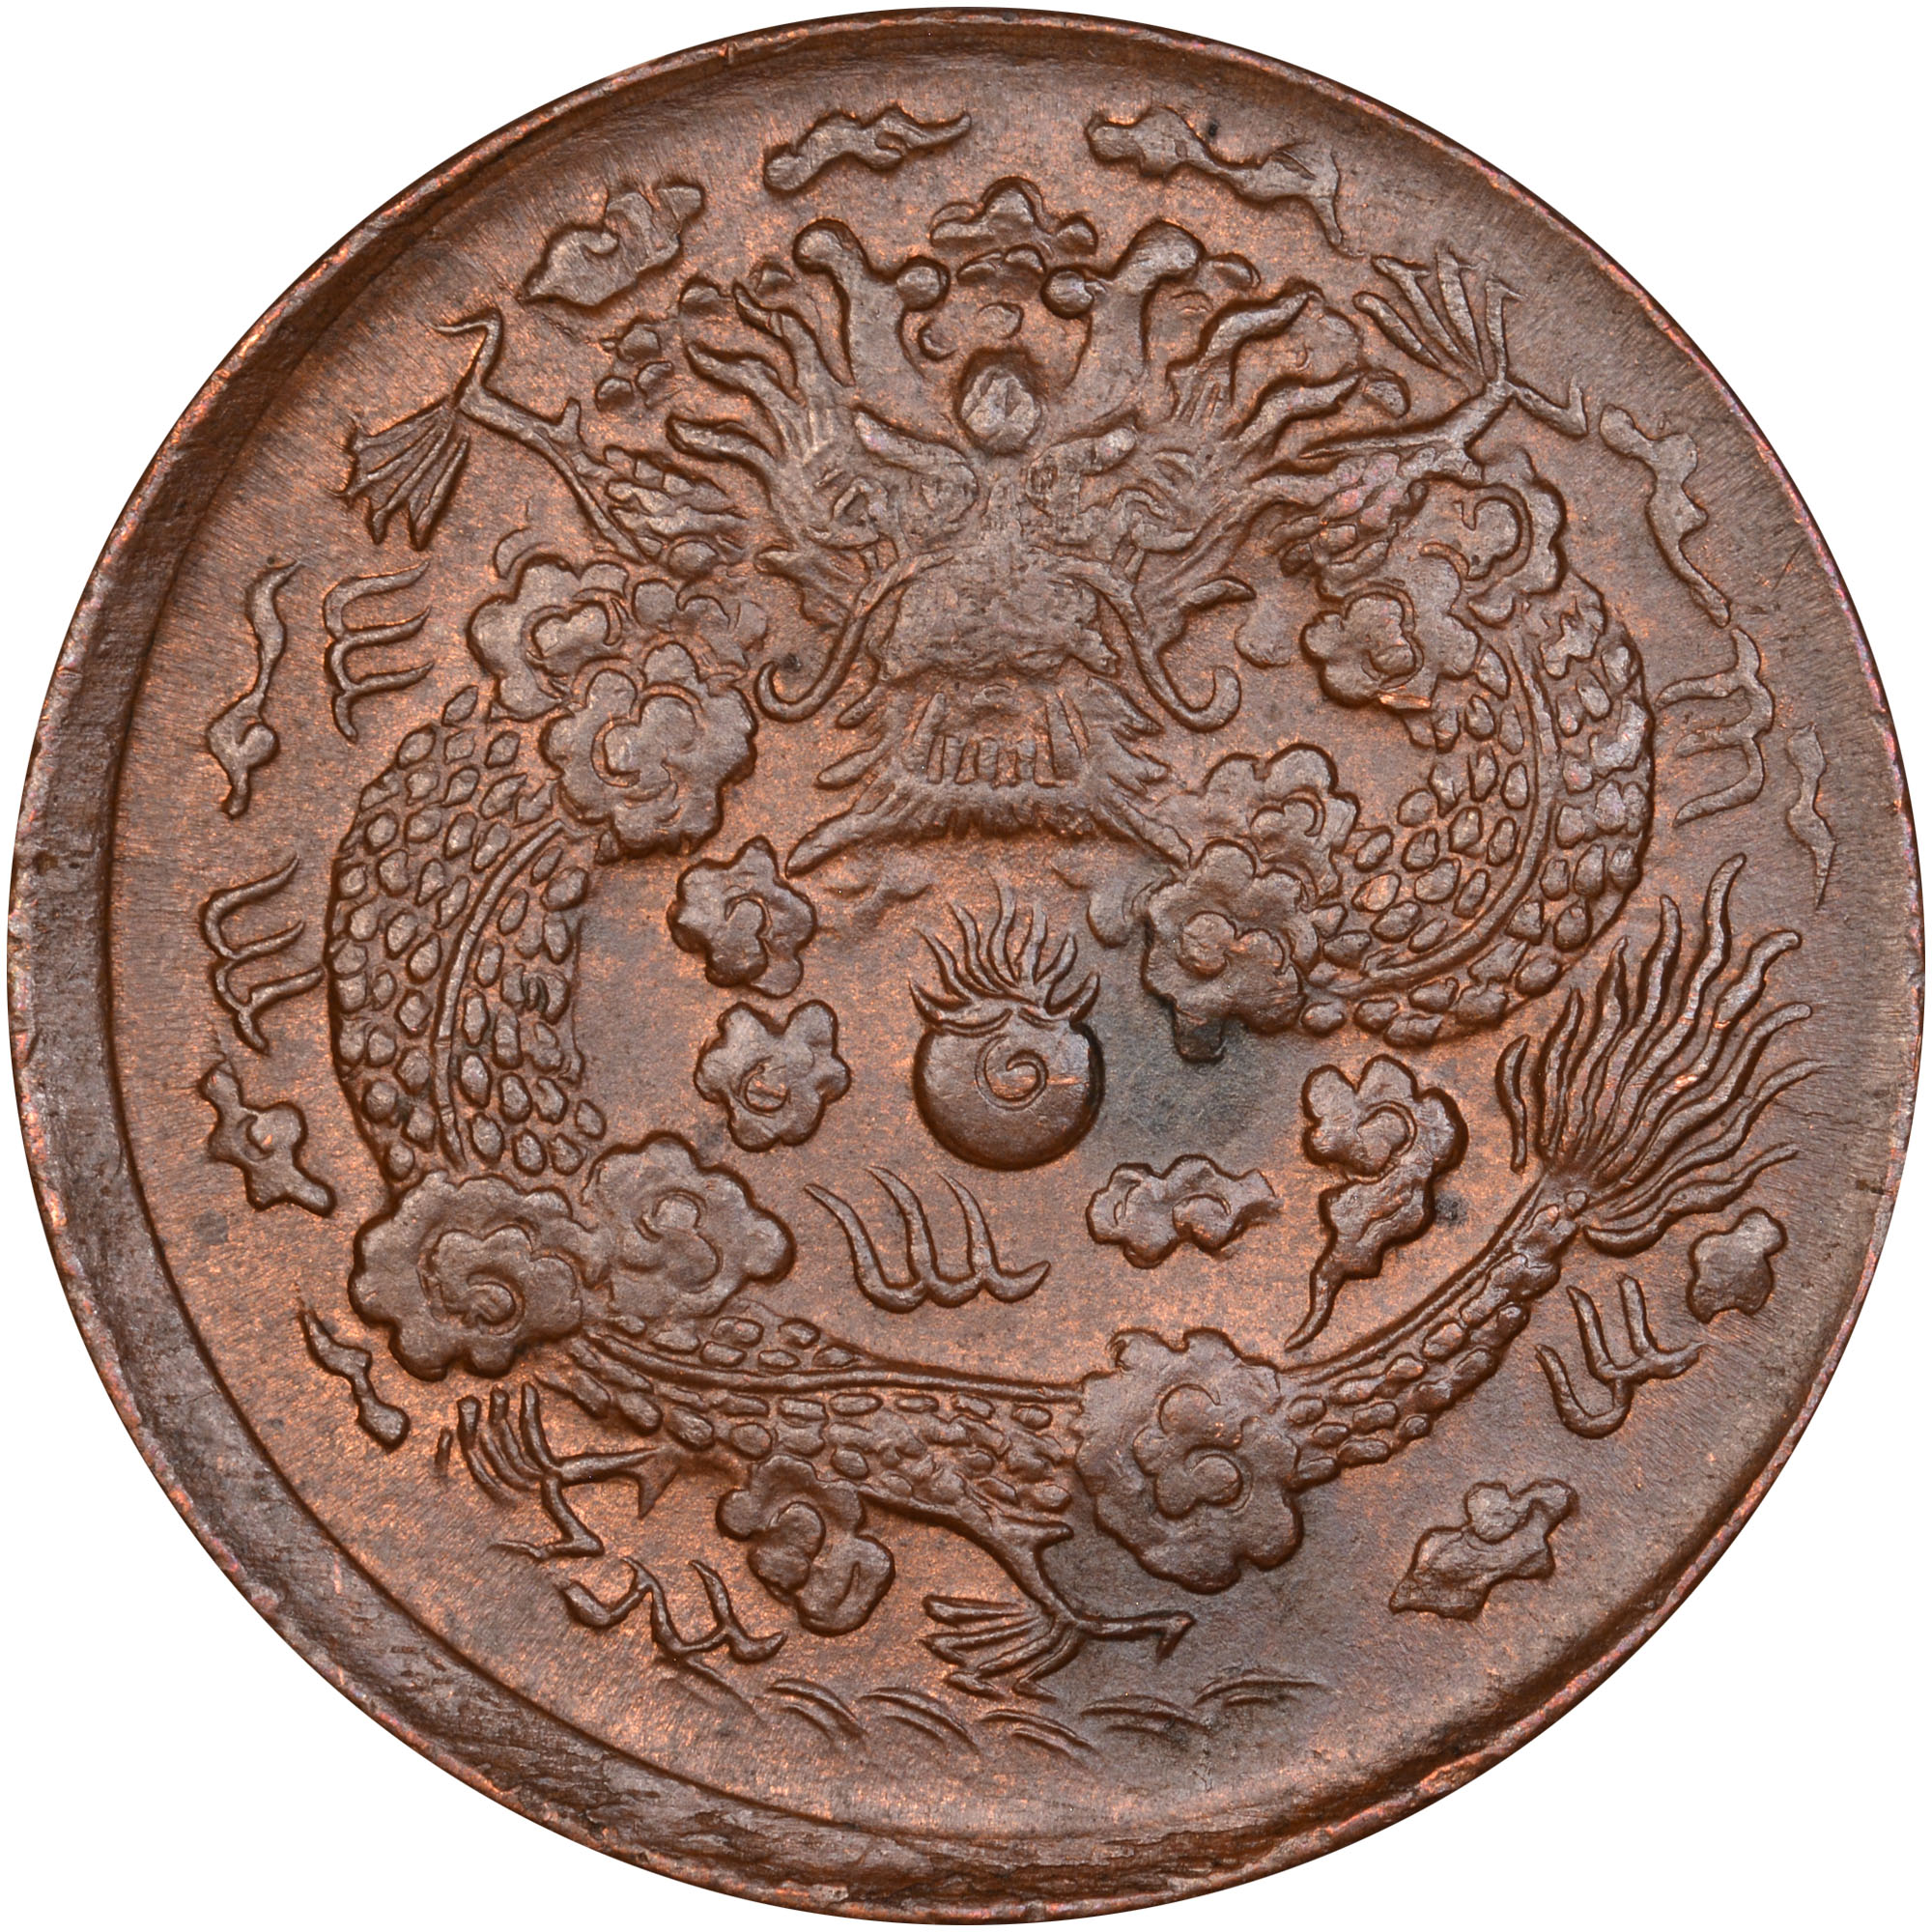 1907 China EMPIRE 2 Cash reverse